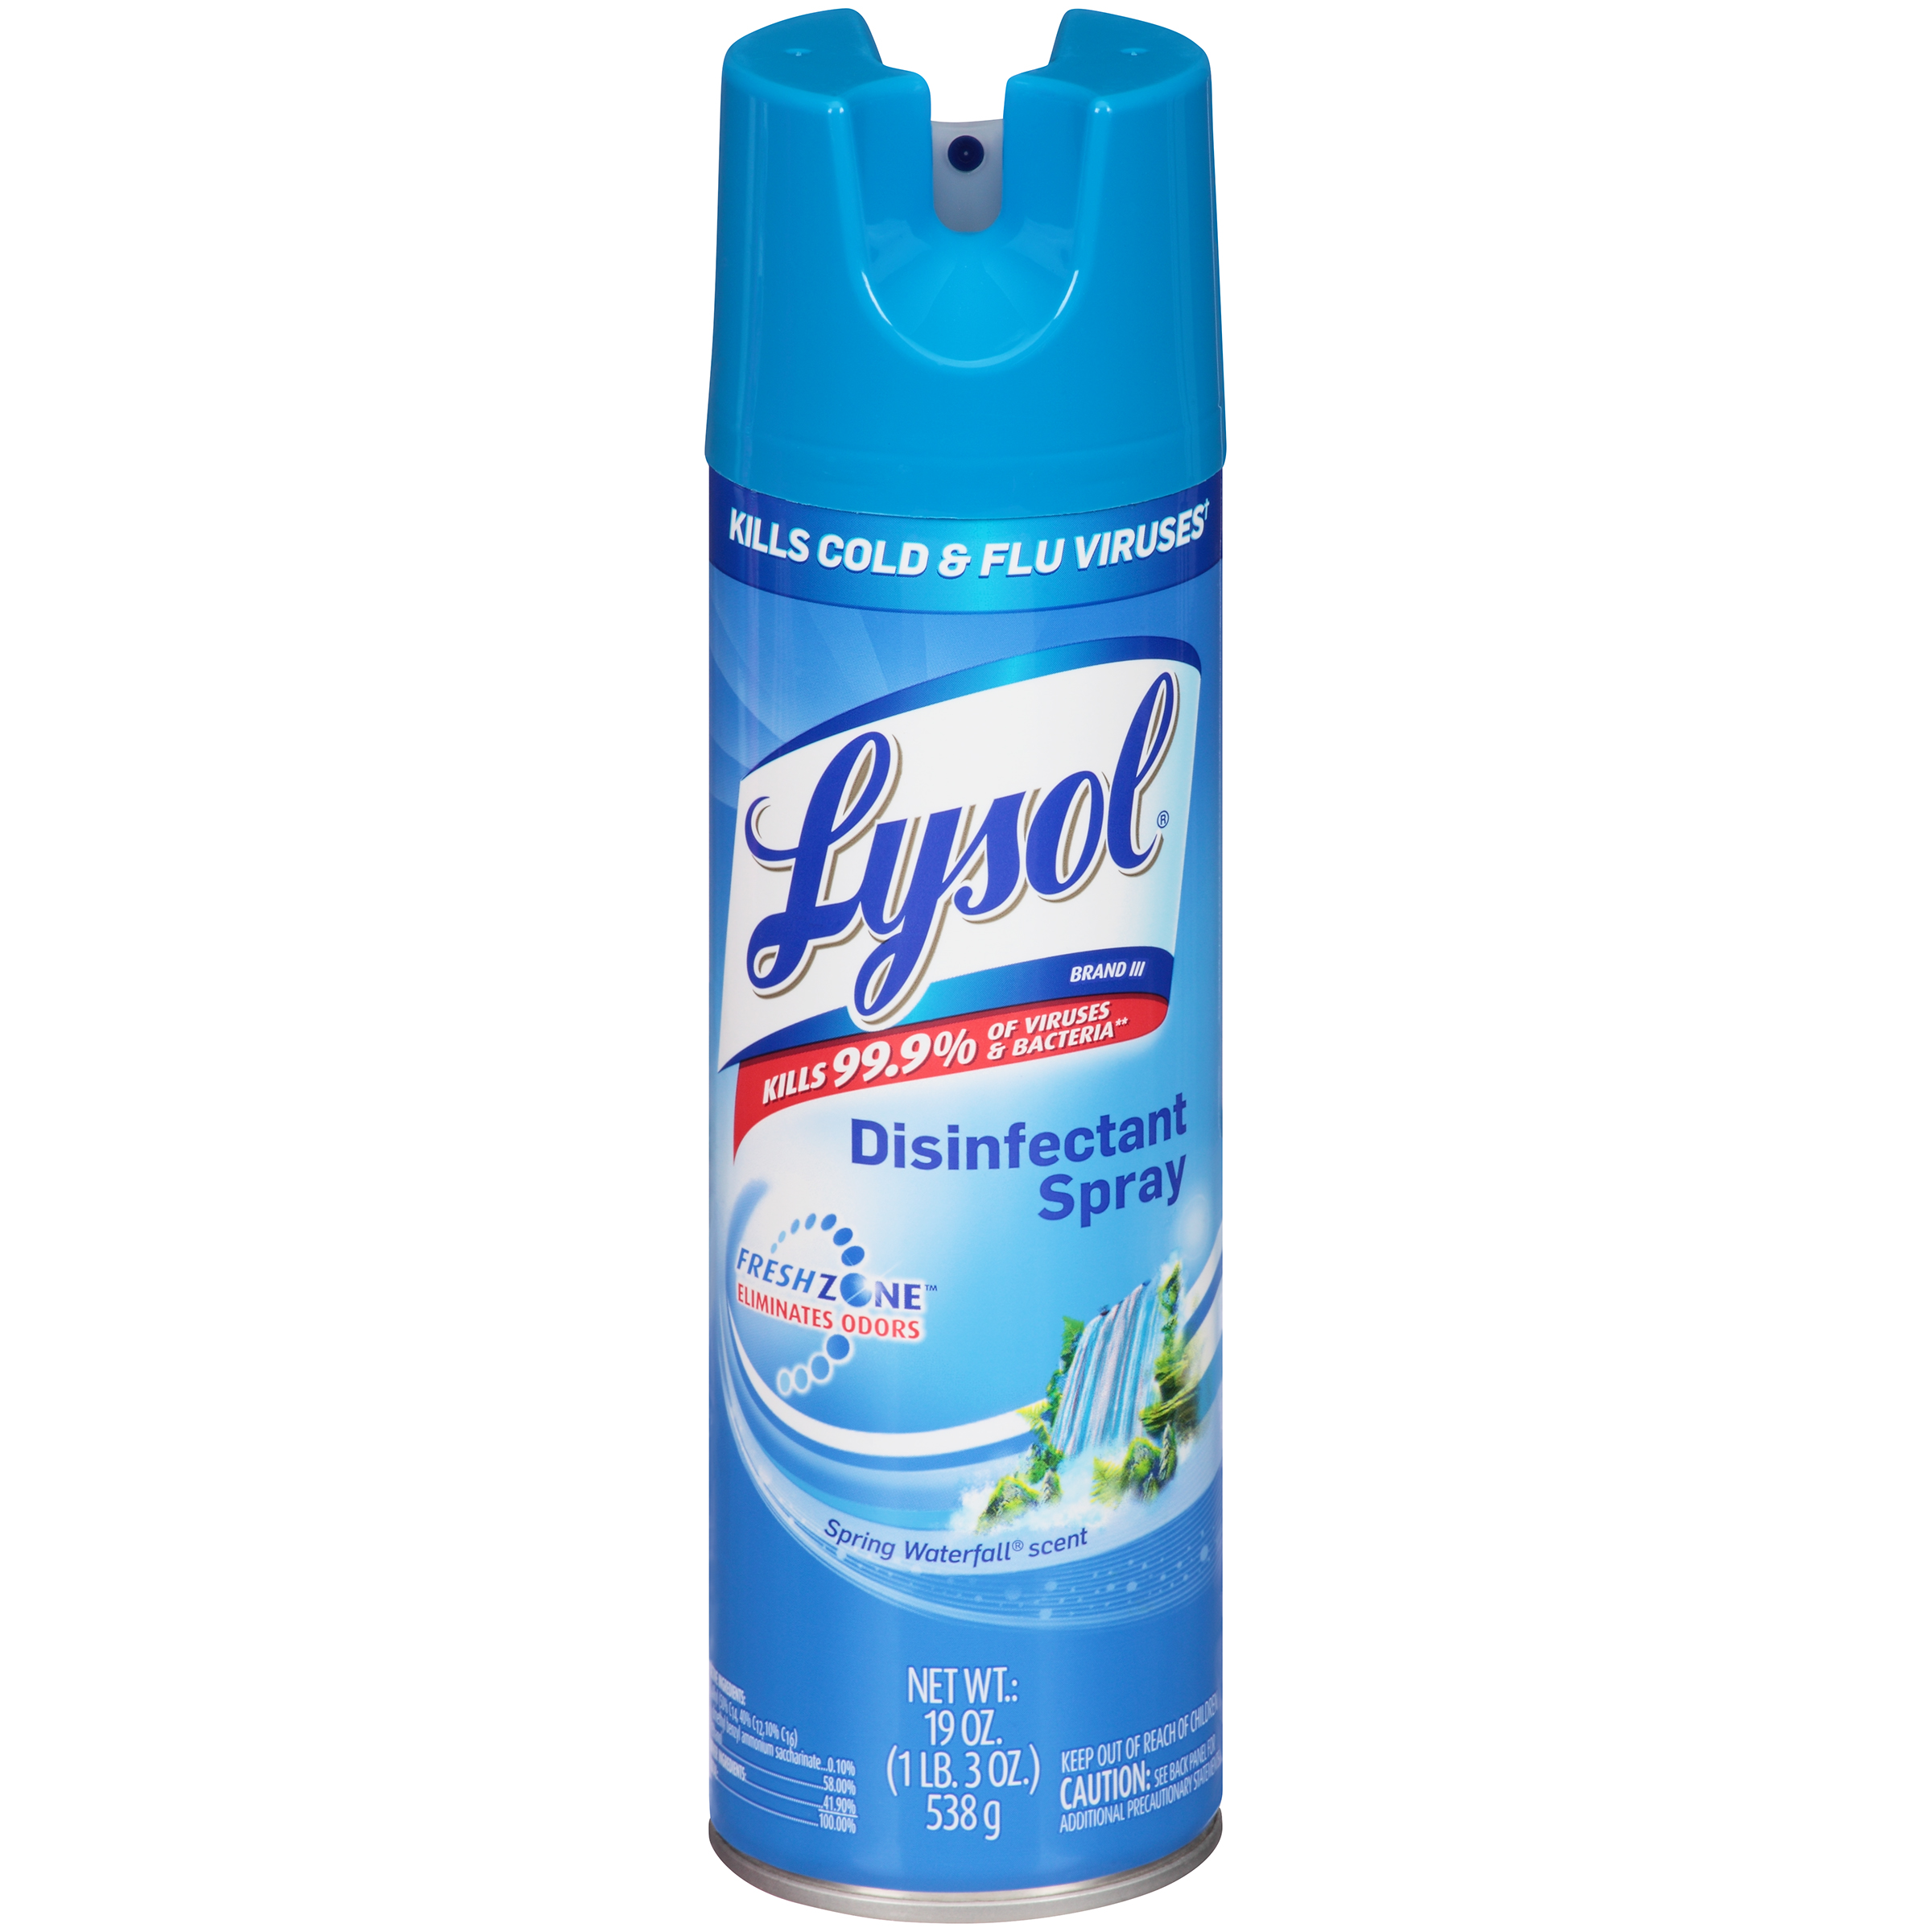 Lysol Disinfectant Spray Spring Waterfall Scent 19 Oz 1